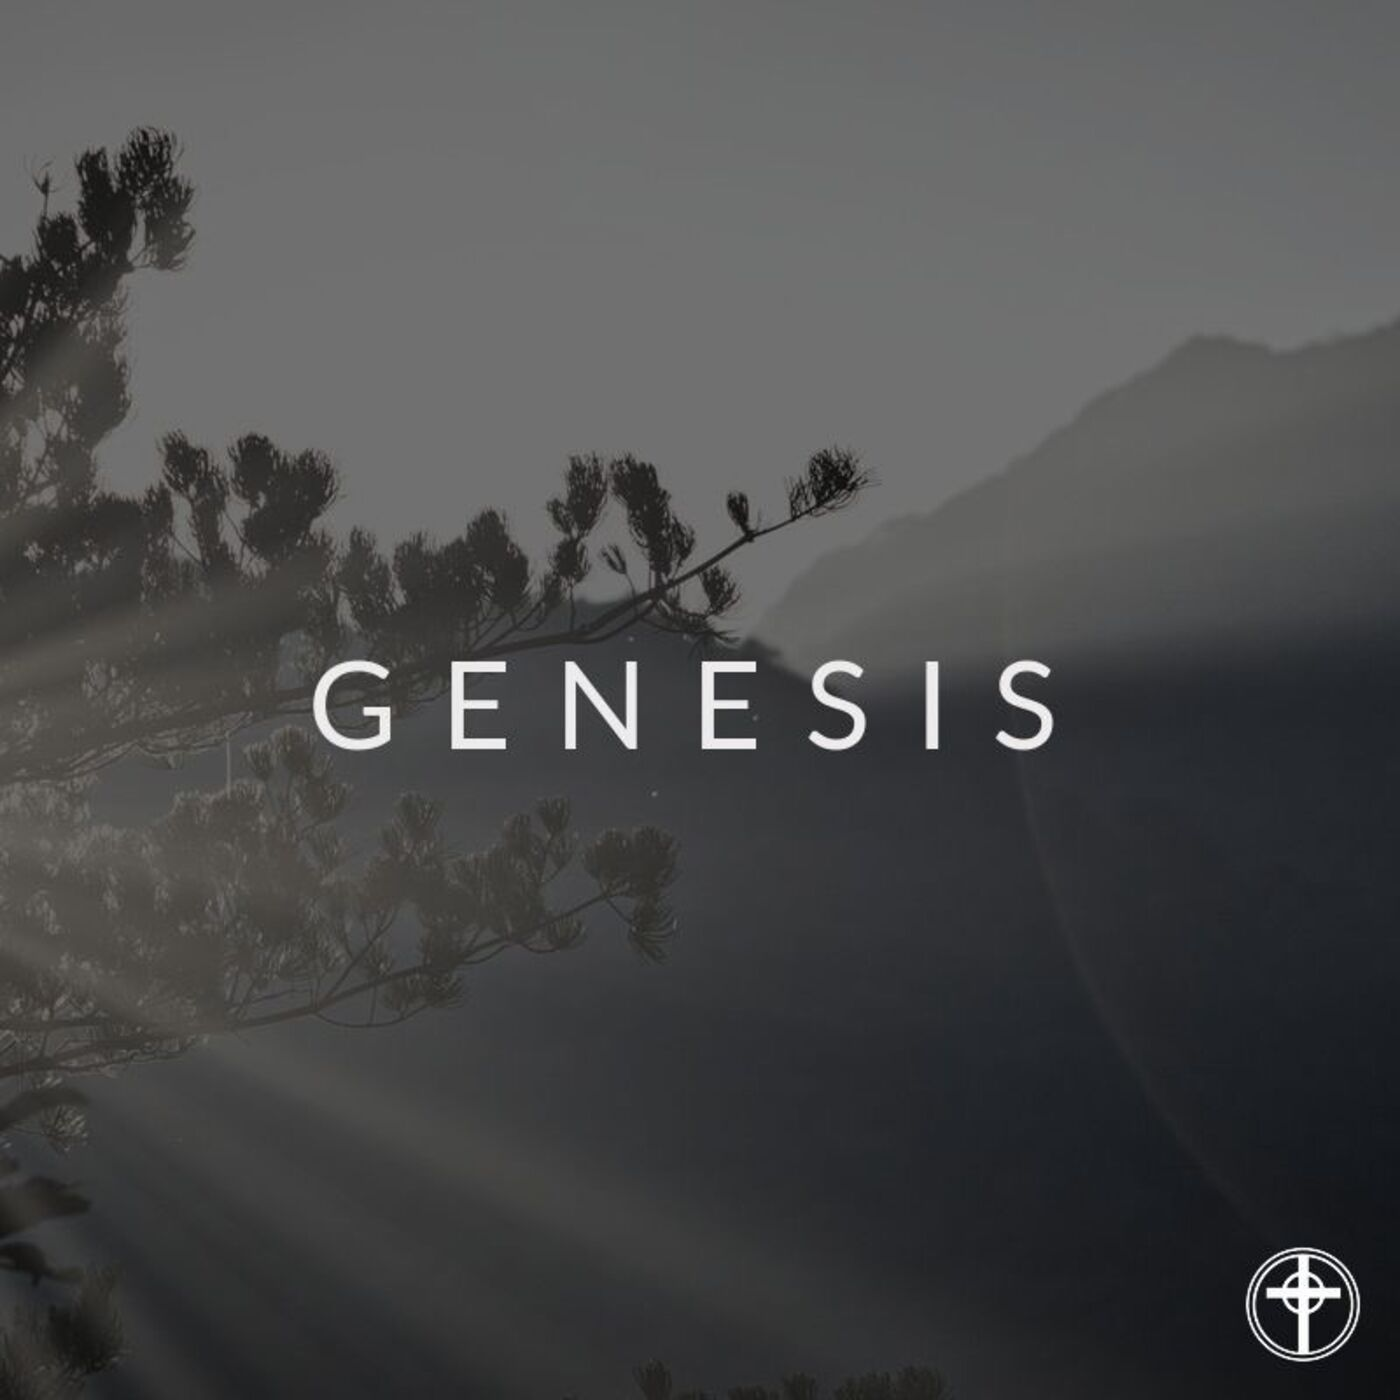 Genesis - About That Blessing - Genesis 48:1-22